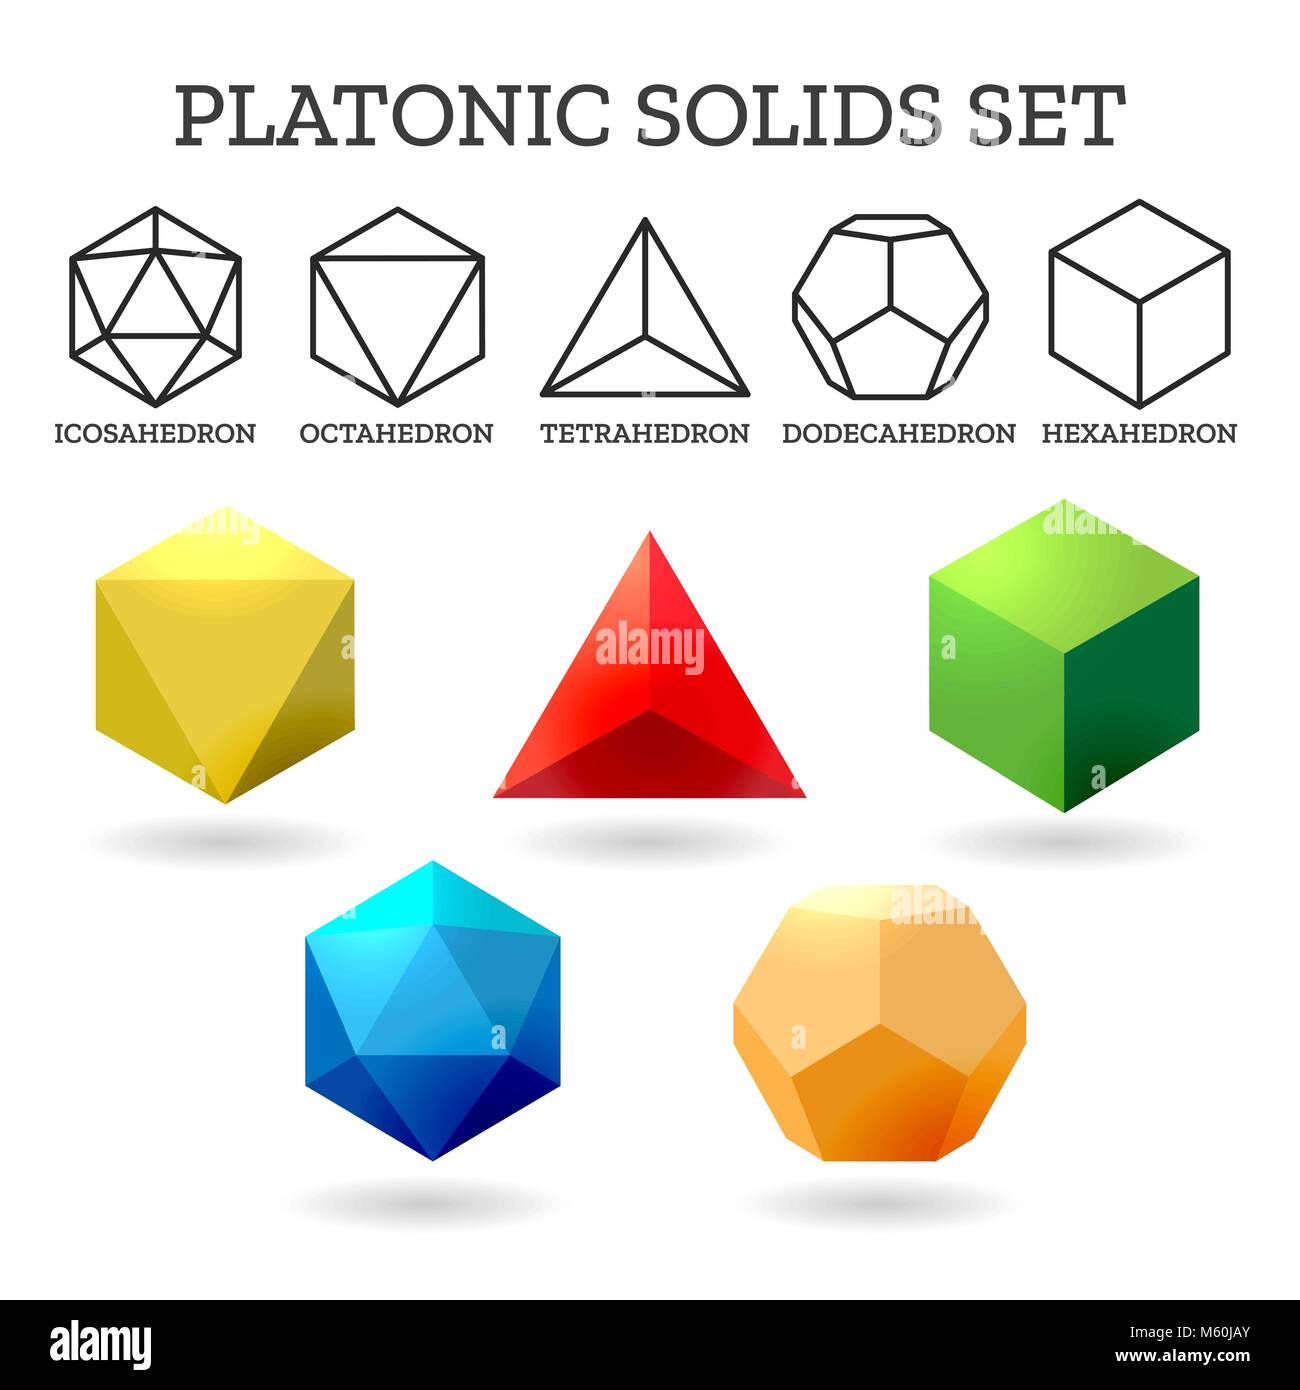 Platonic 3d shapes  Platon geometry abstract solid icons